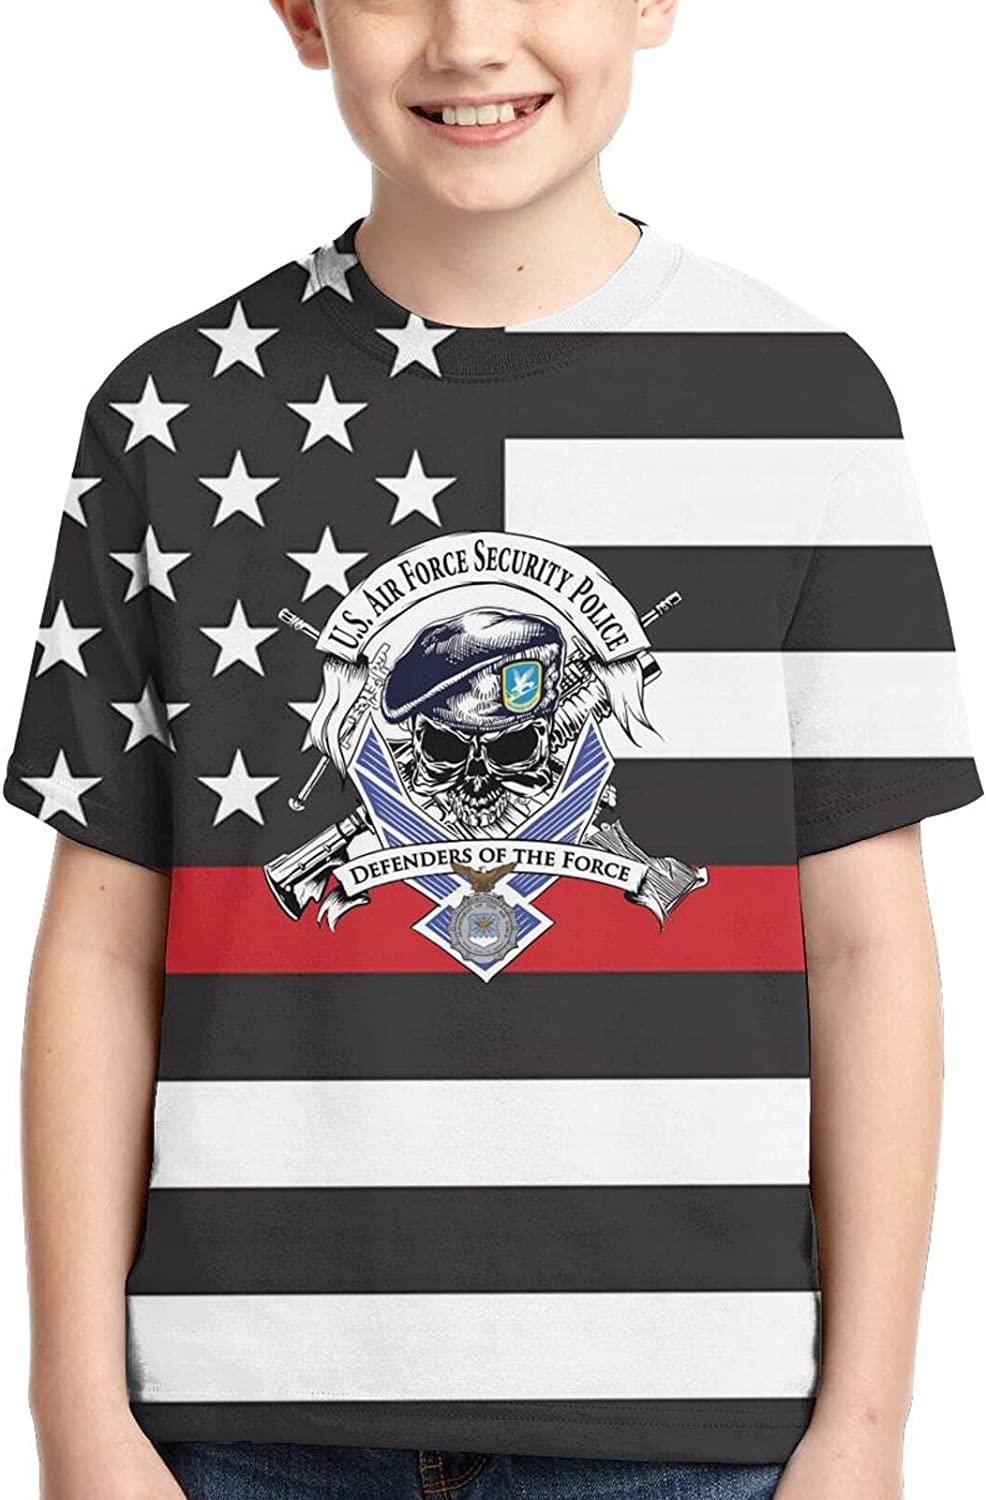 Daoaomaoyi I Defensor Fortis Air Force Security Force Boys 3D Children Tshirt Tee Soft Casual